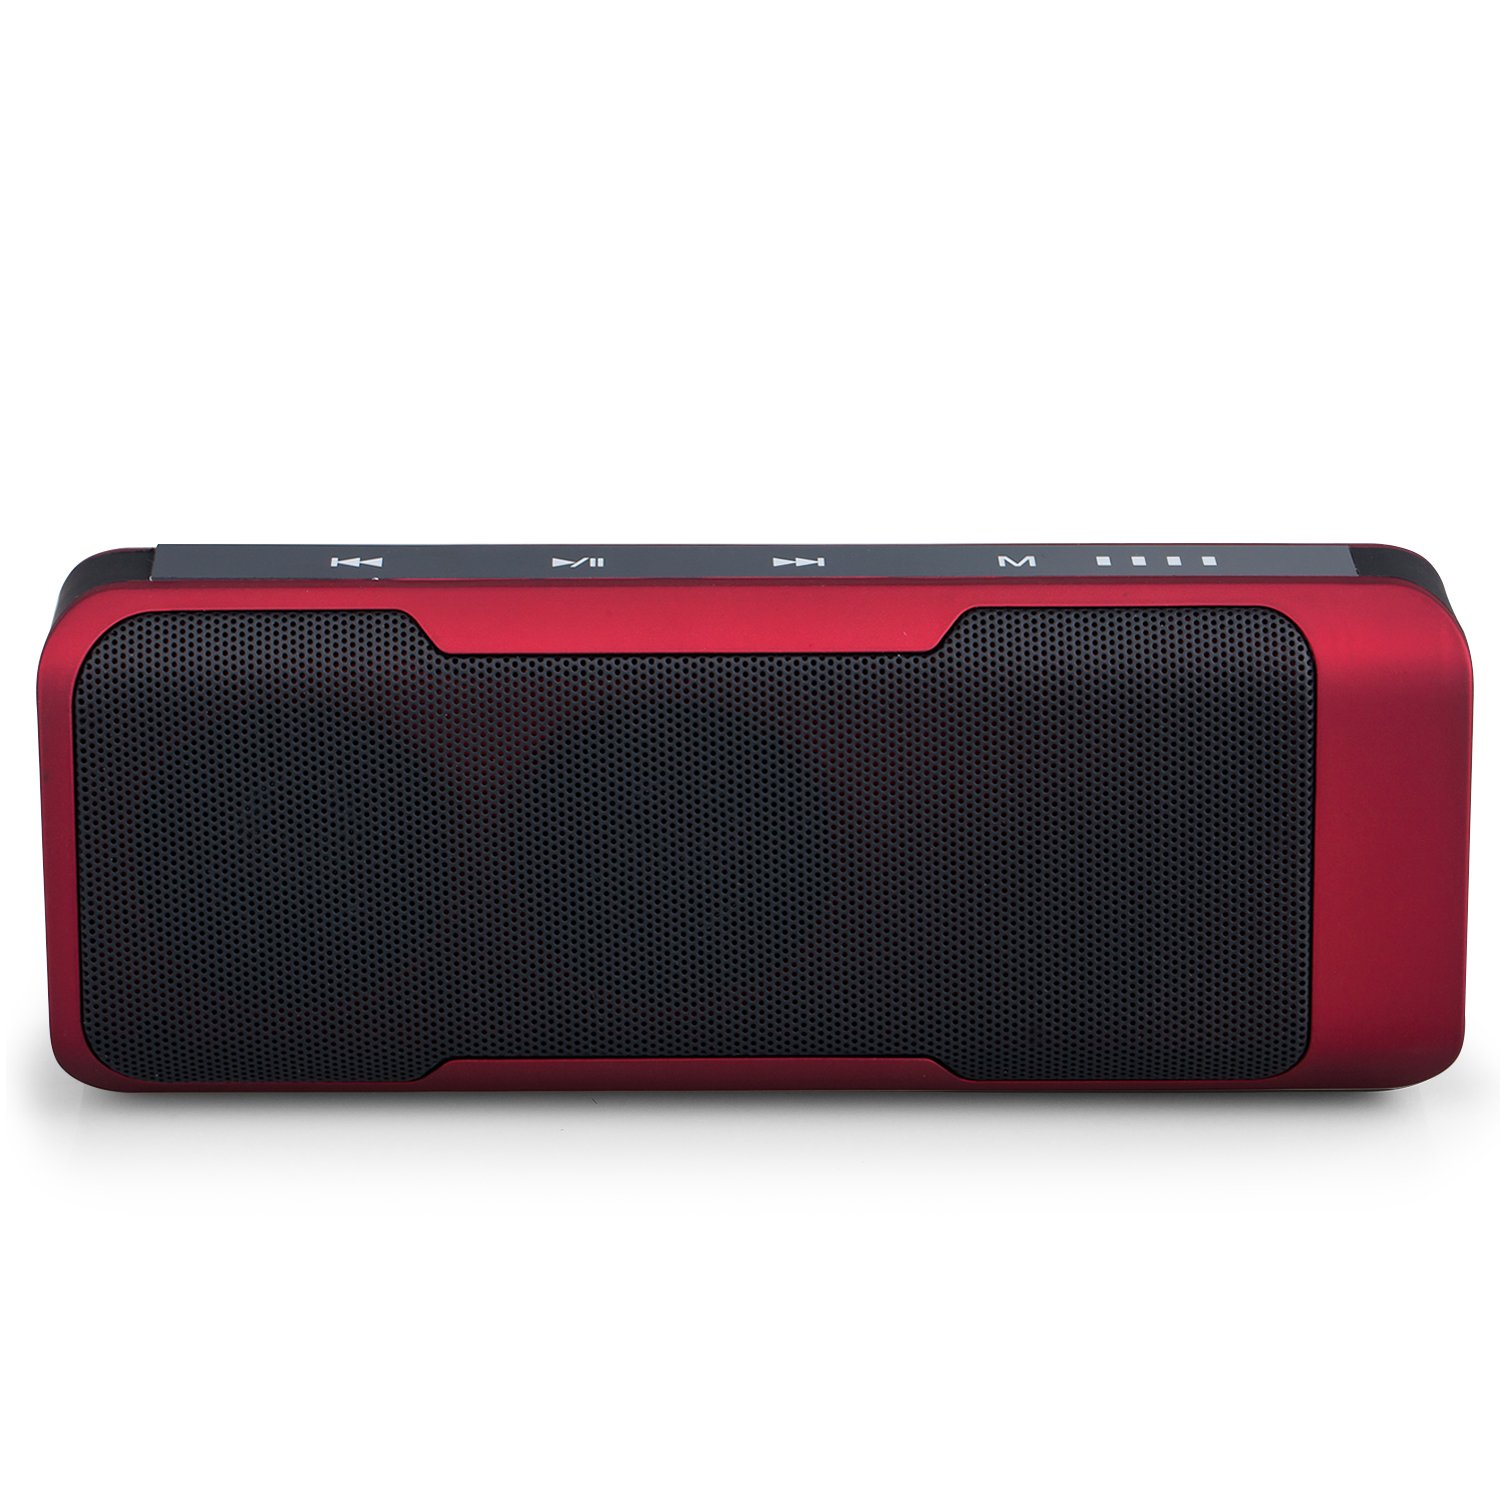 Pacuwi Portable Stereo Bluetooth Speaker Multi-function with 4000mAh Power Bank Compatible for iPhone / Android Phones & PC & iPod & MP3 / MP4, Support FM Radio / TF Card